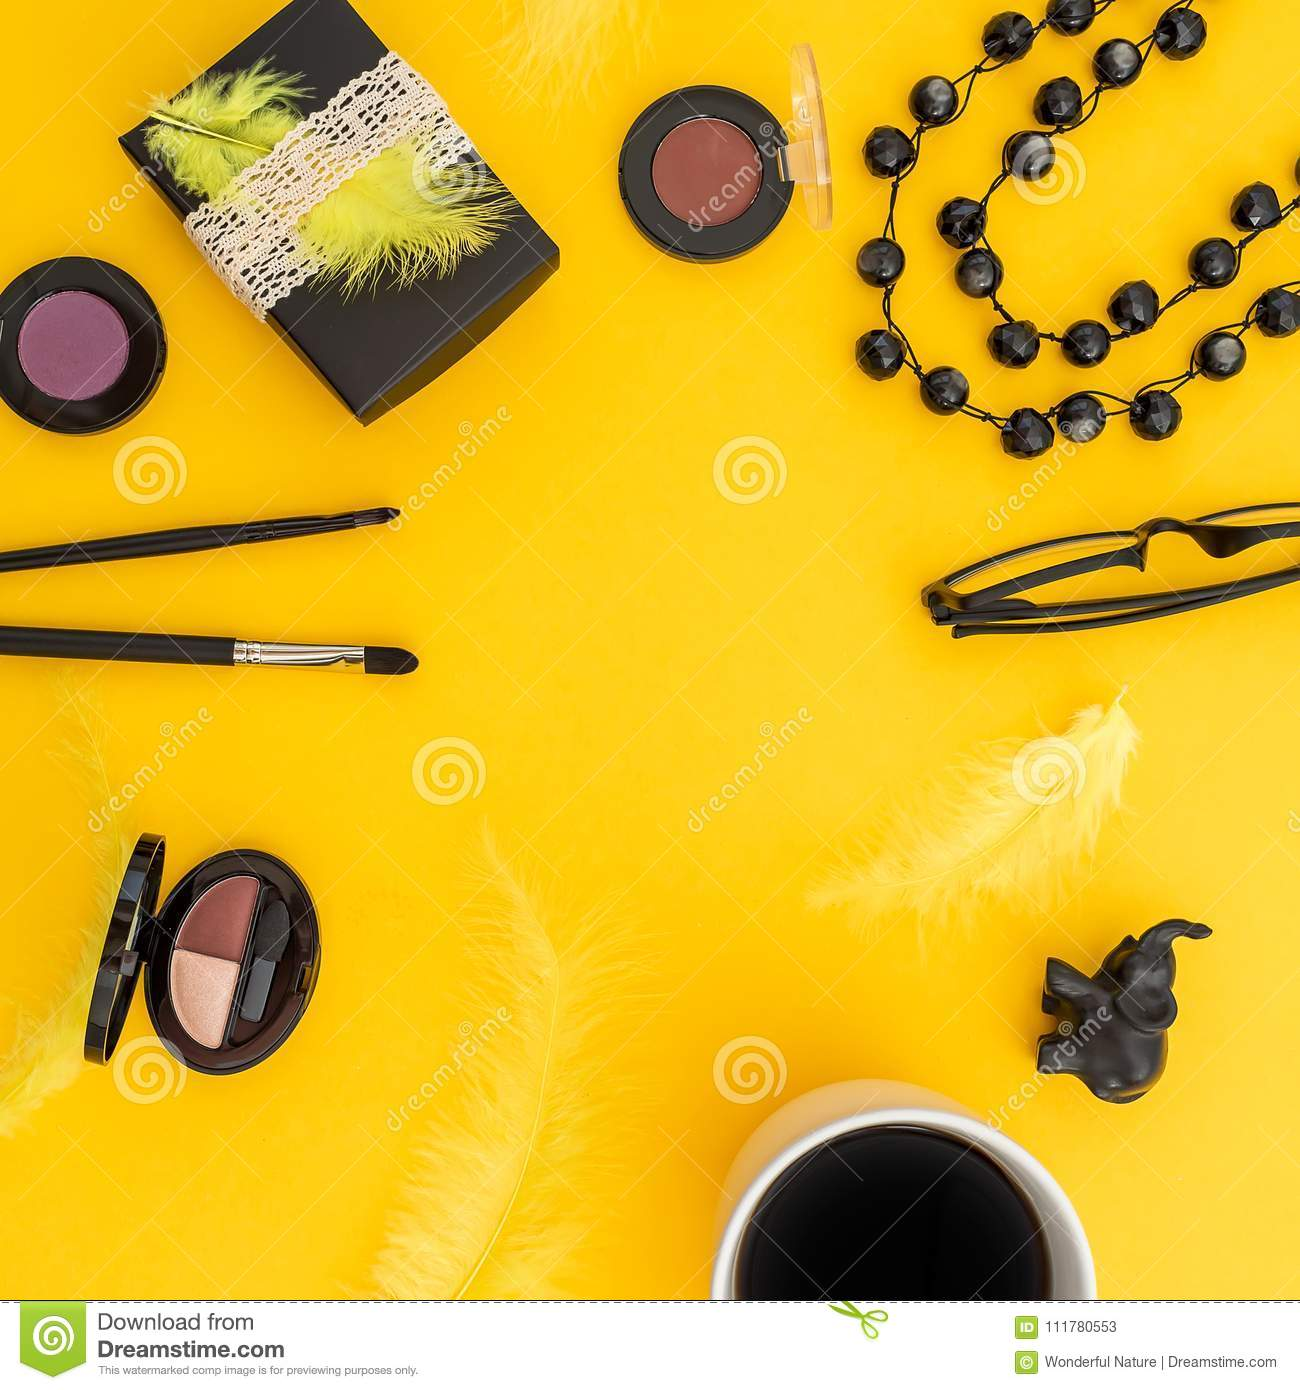 Round frame of gift box, glasses, cosmetics, bijouterie and accessories with mug of coffee on yellow background. Blogger concept w